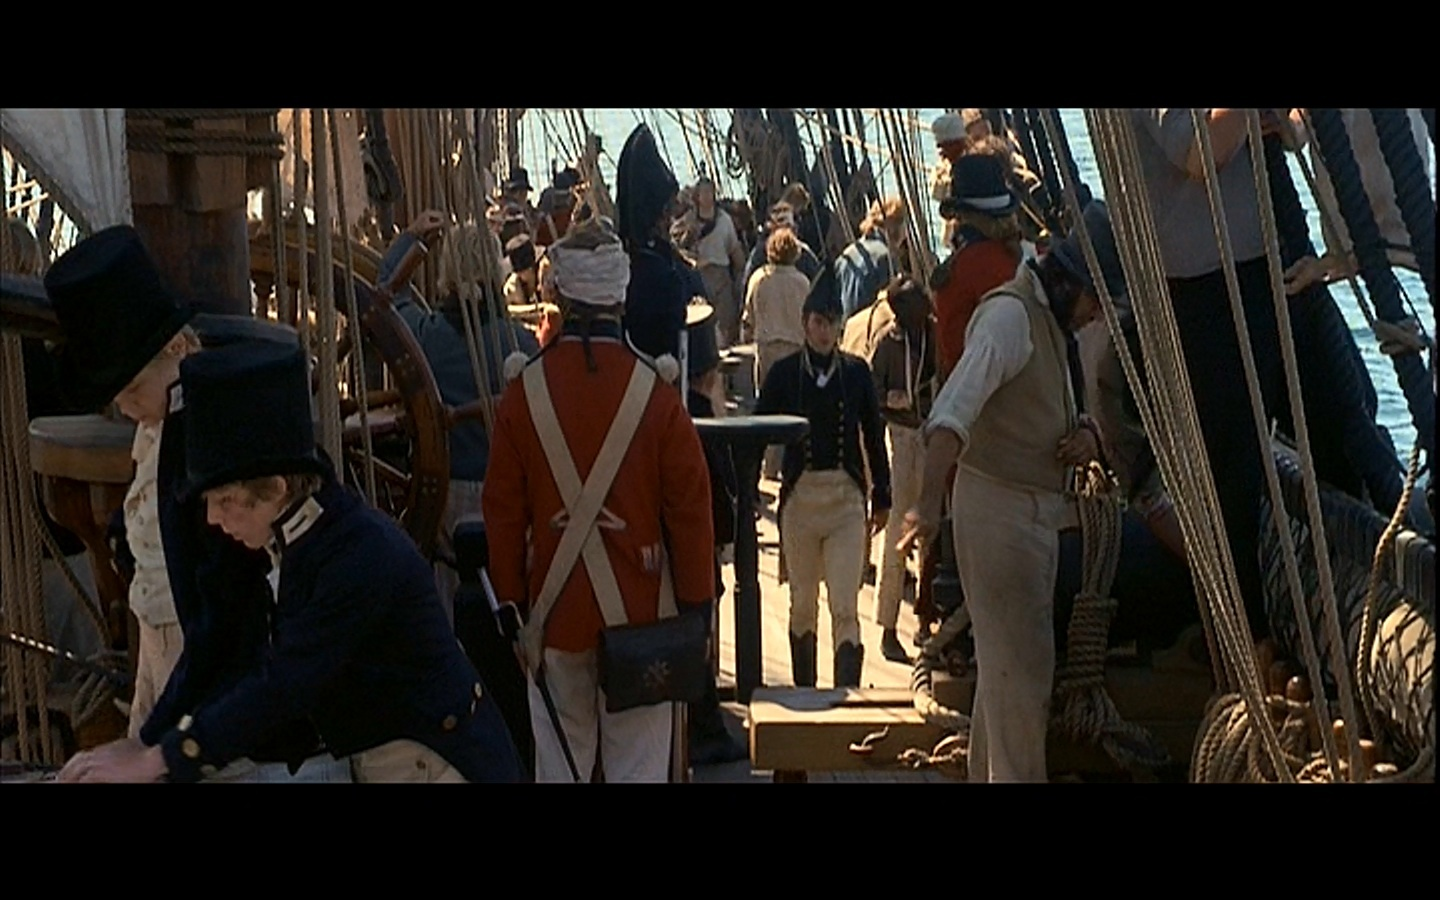 Chile at the movies: Master and Commander: The Far Side of the World (2003)